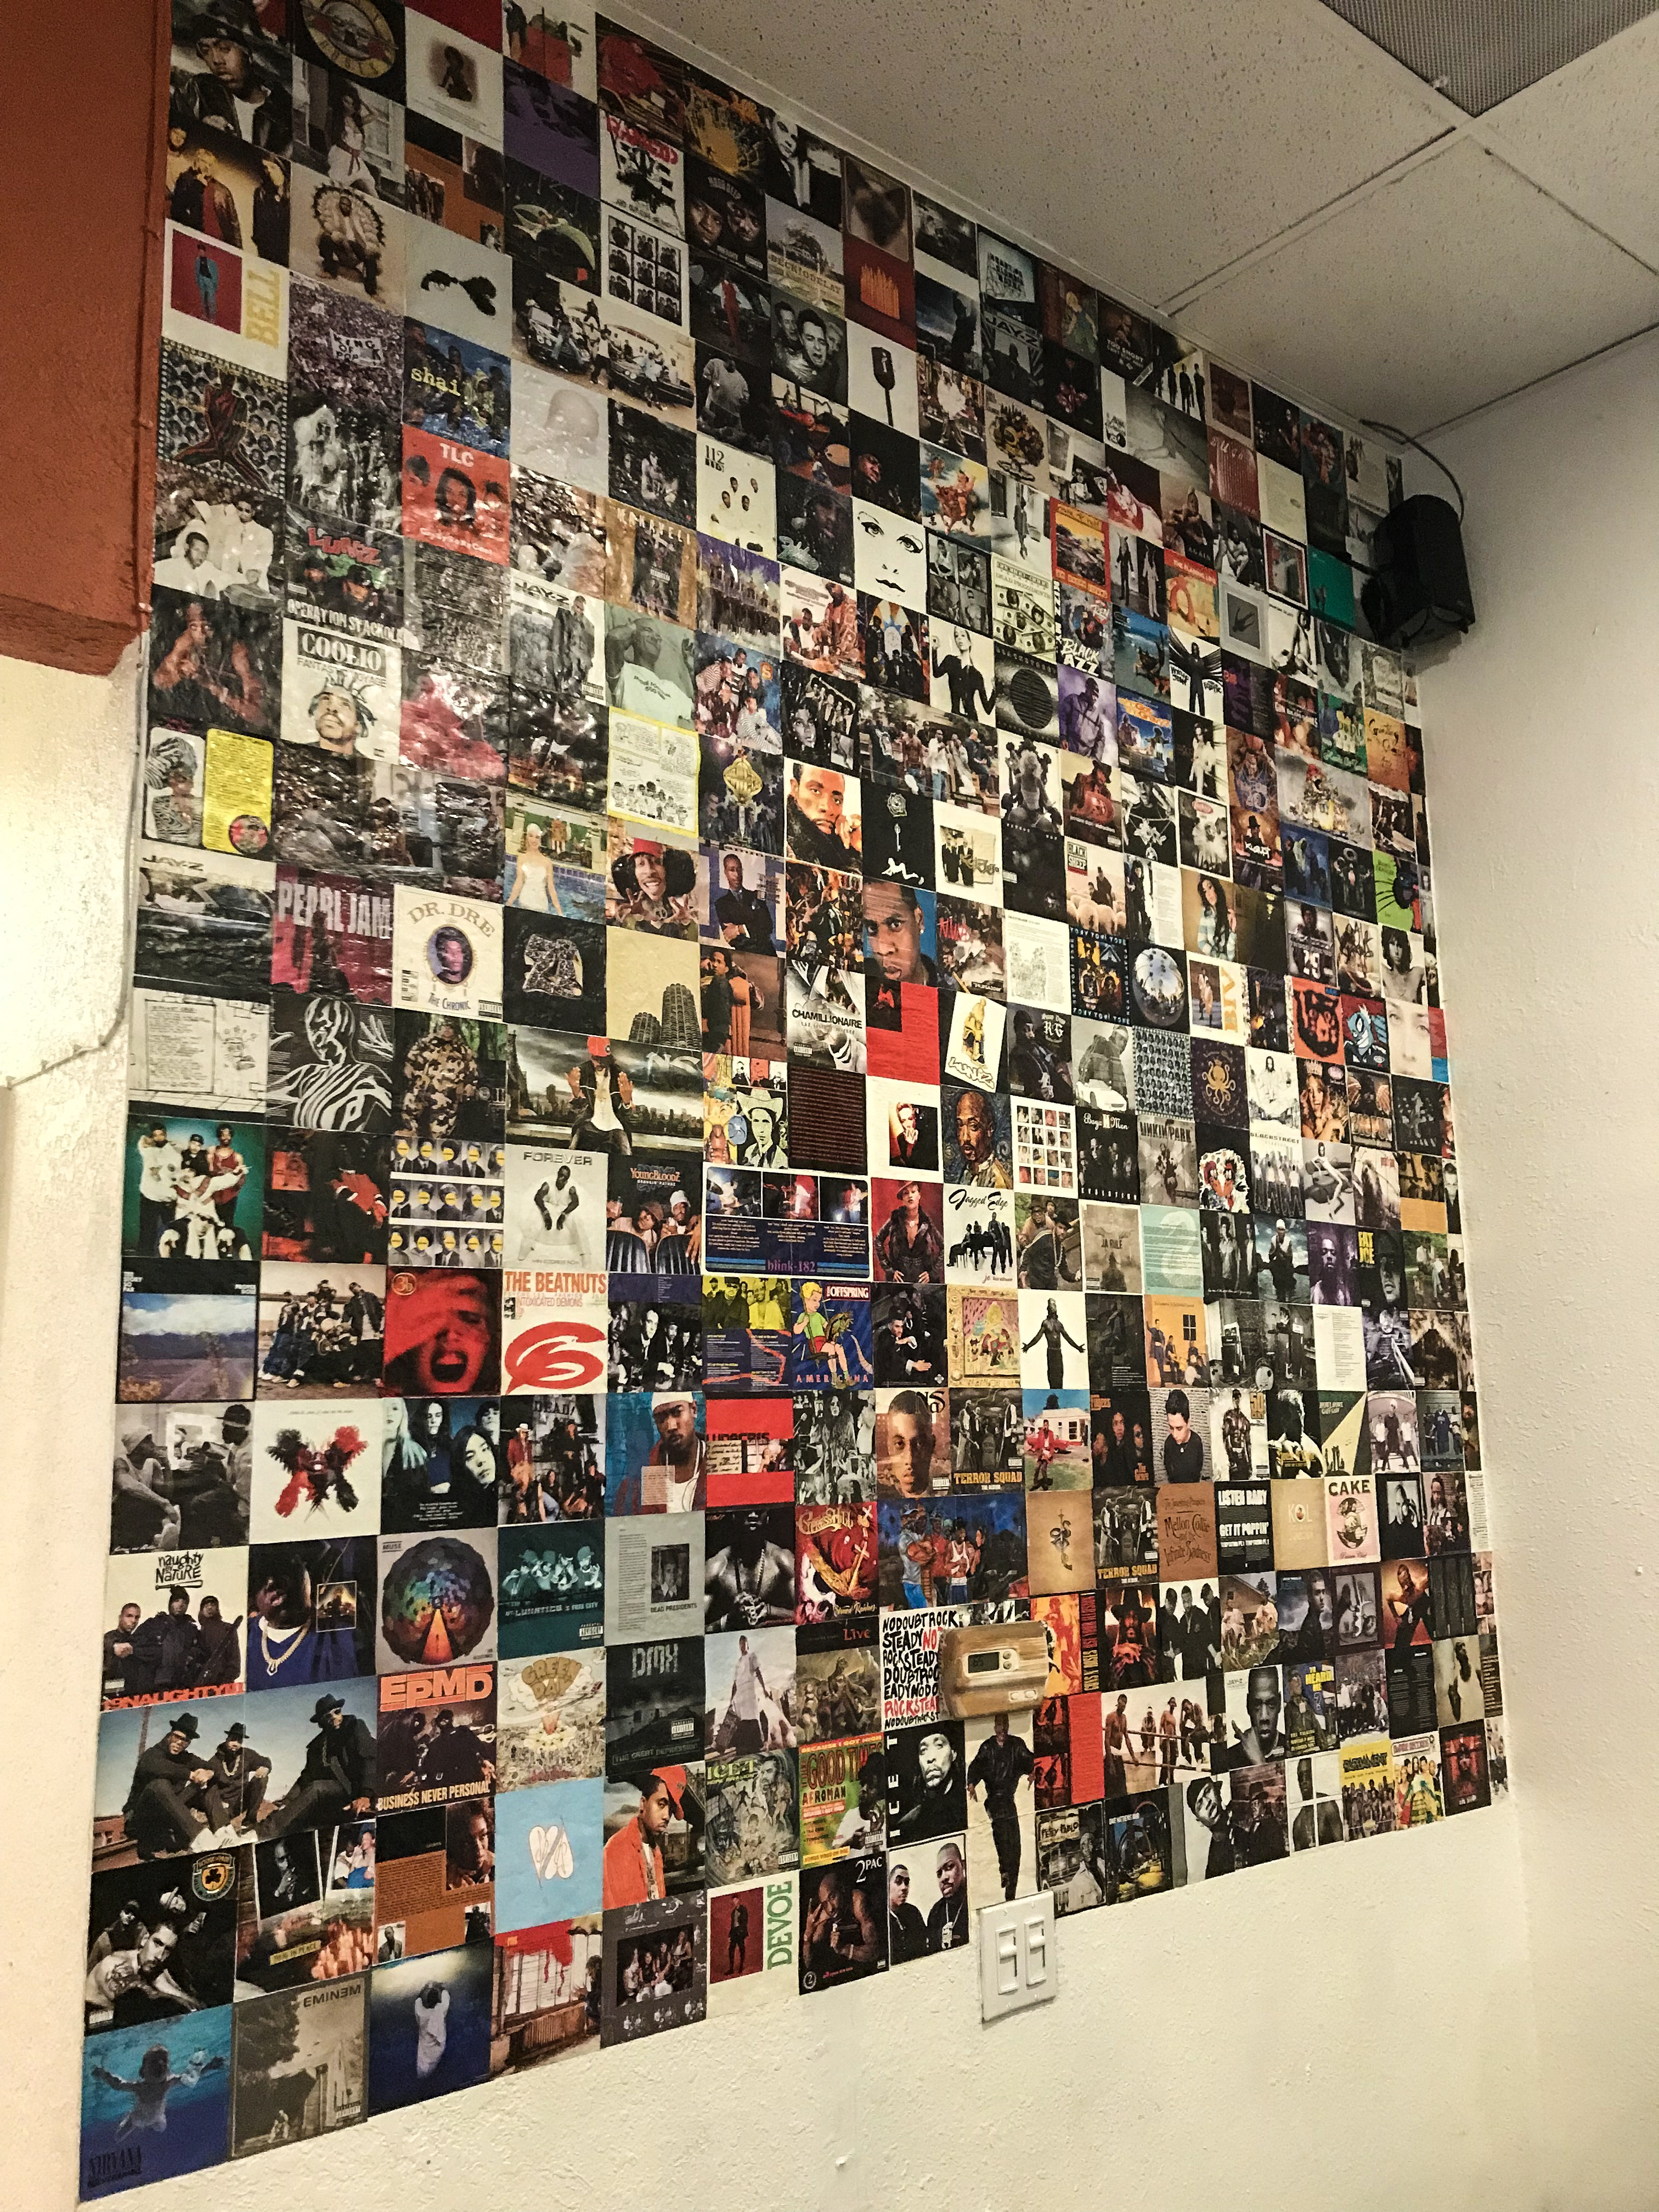 CD Album covers on the wall inside the brewery